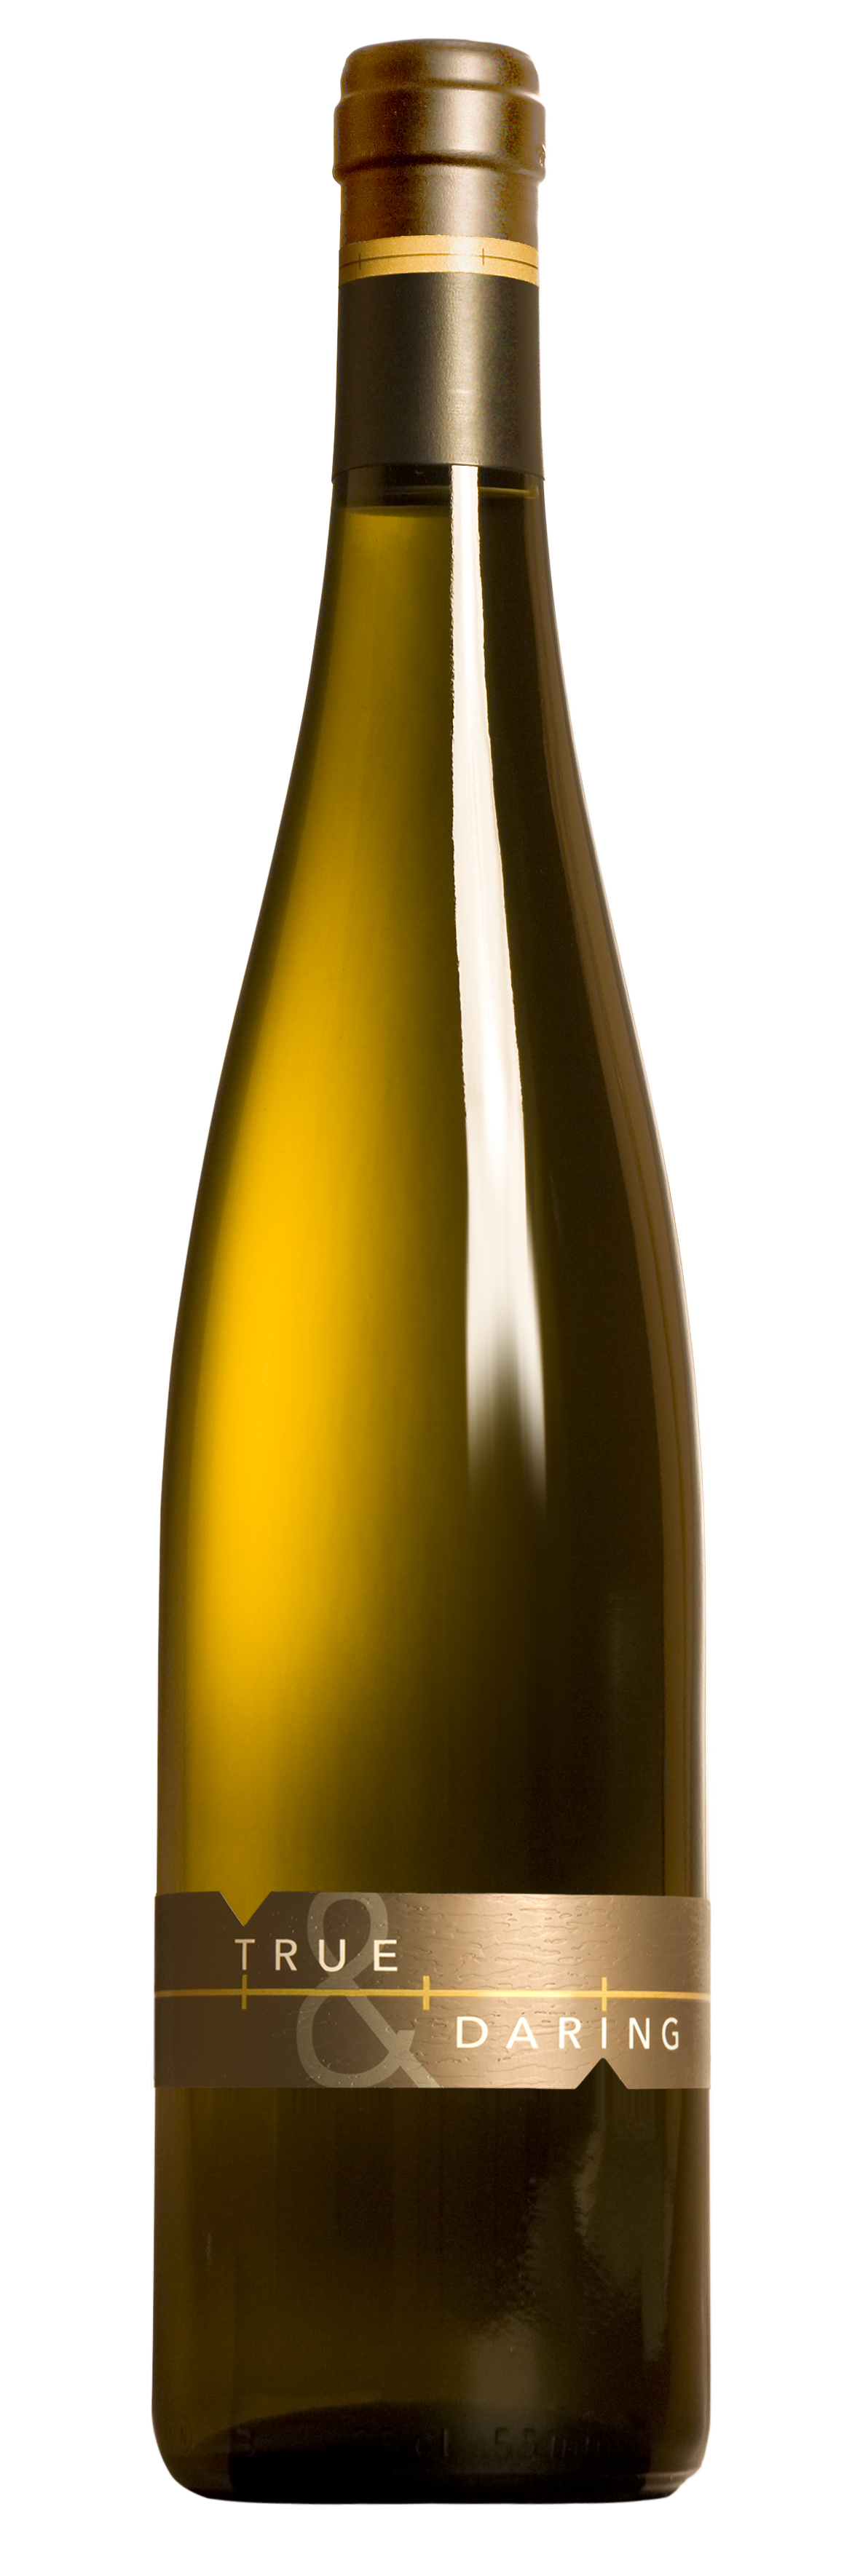 Blank wine bottle png. Images free download image